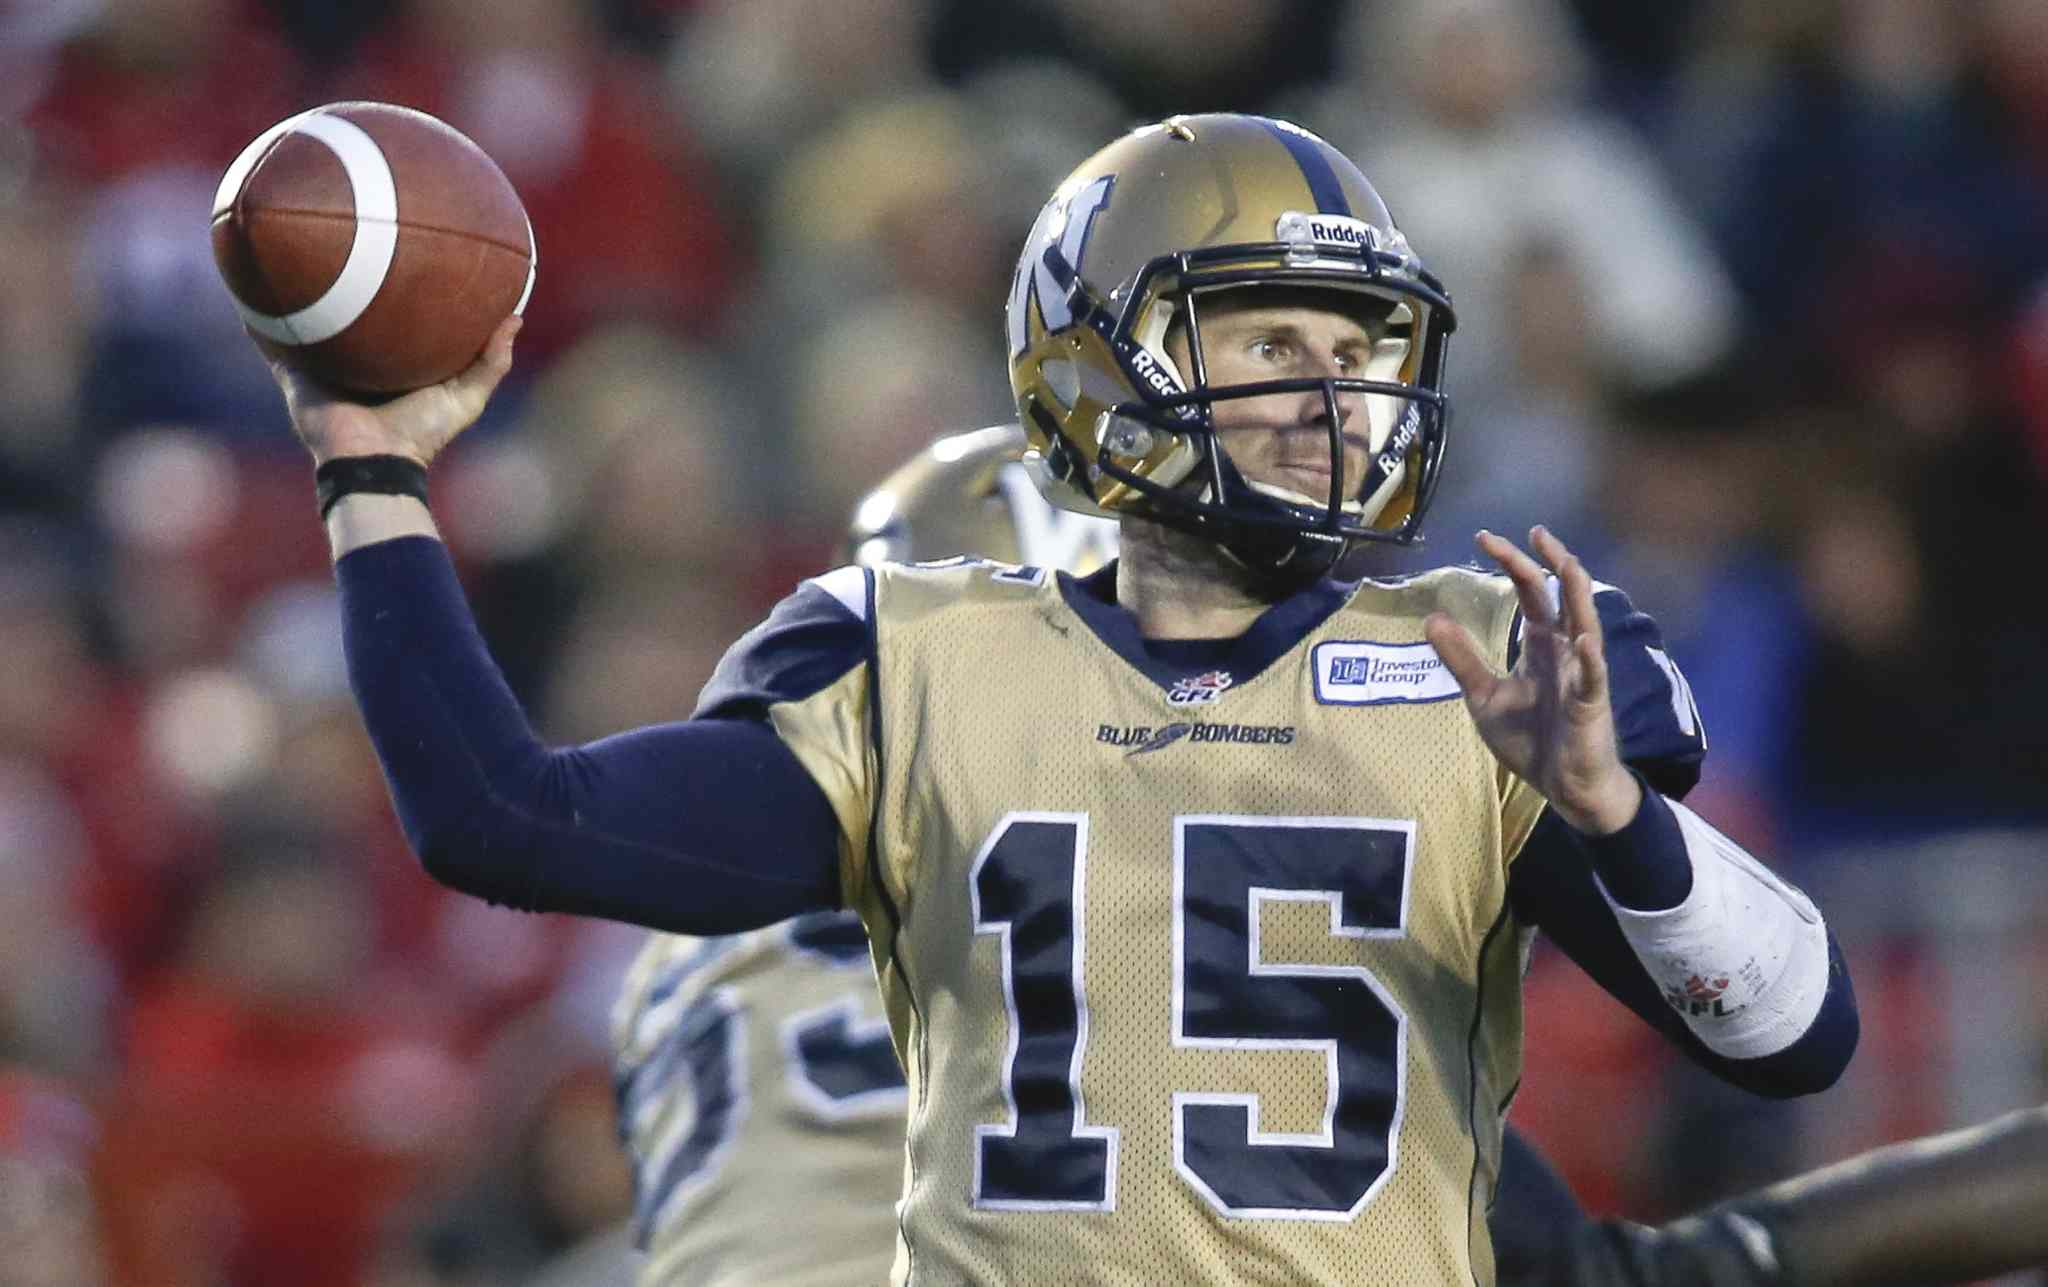 Winnipeg Blue Bombers quarterback Max Hall throws the ball during the second half. Hall completed 15 of 34 passes for 147 yards and with one interception.